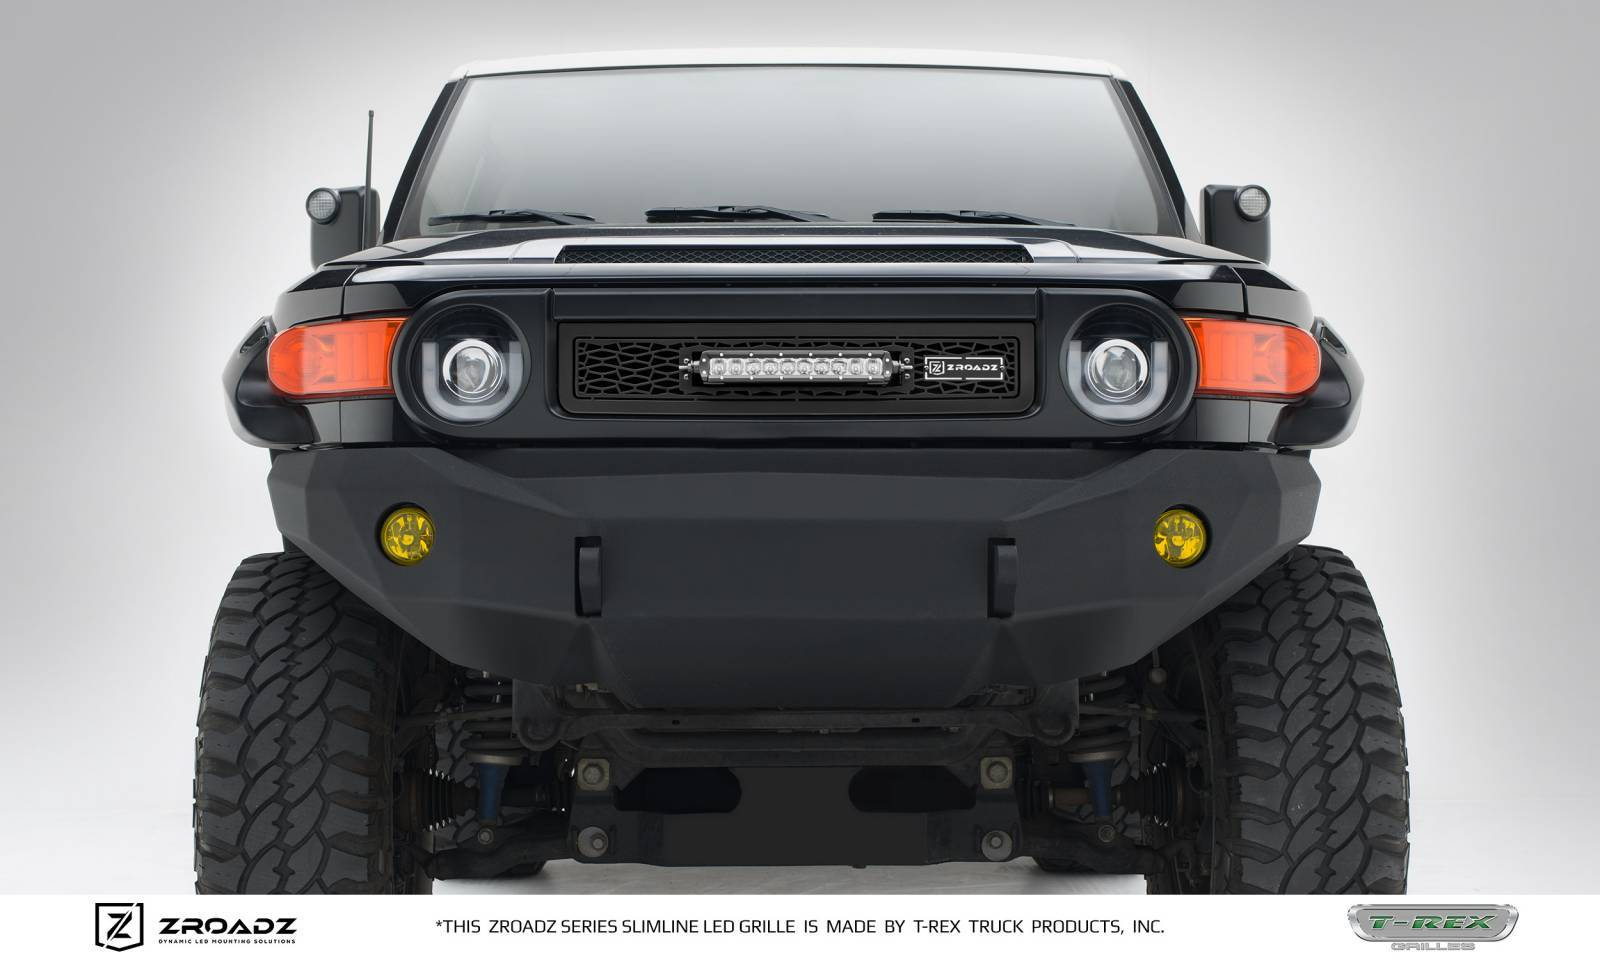 T-REX Toyota FJ Cruiser - ZROADZ Series - Main Insert - Grille w/ One 10 Inch Slim Line Single Row LED Light Bar - Includes Universal Wiring Harness - Part# Z319321